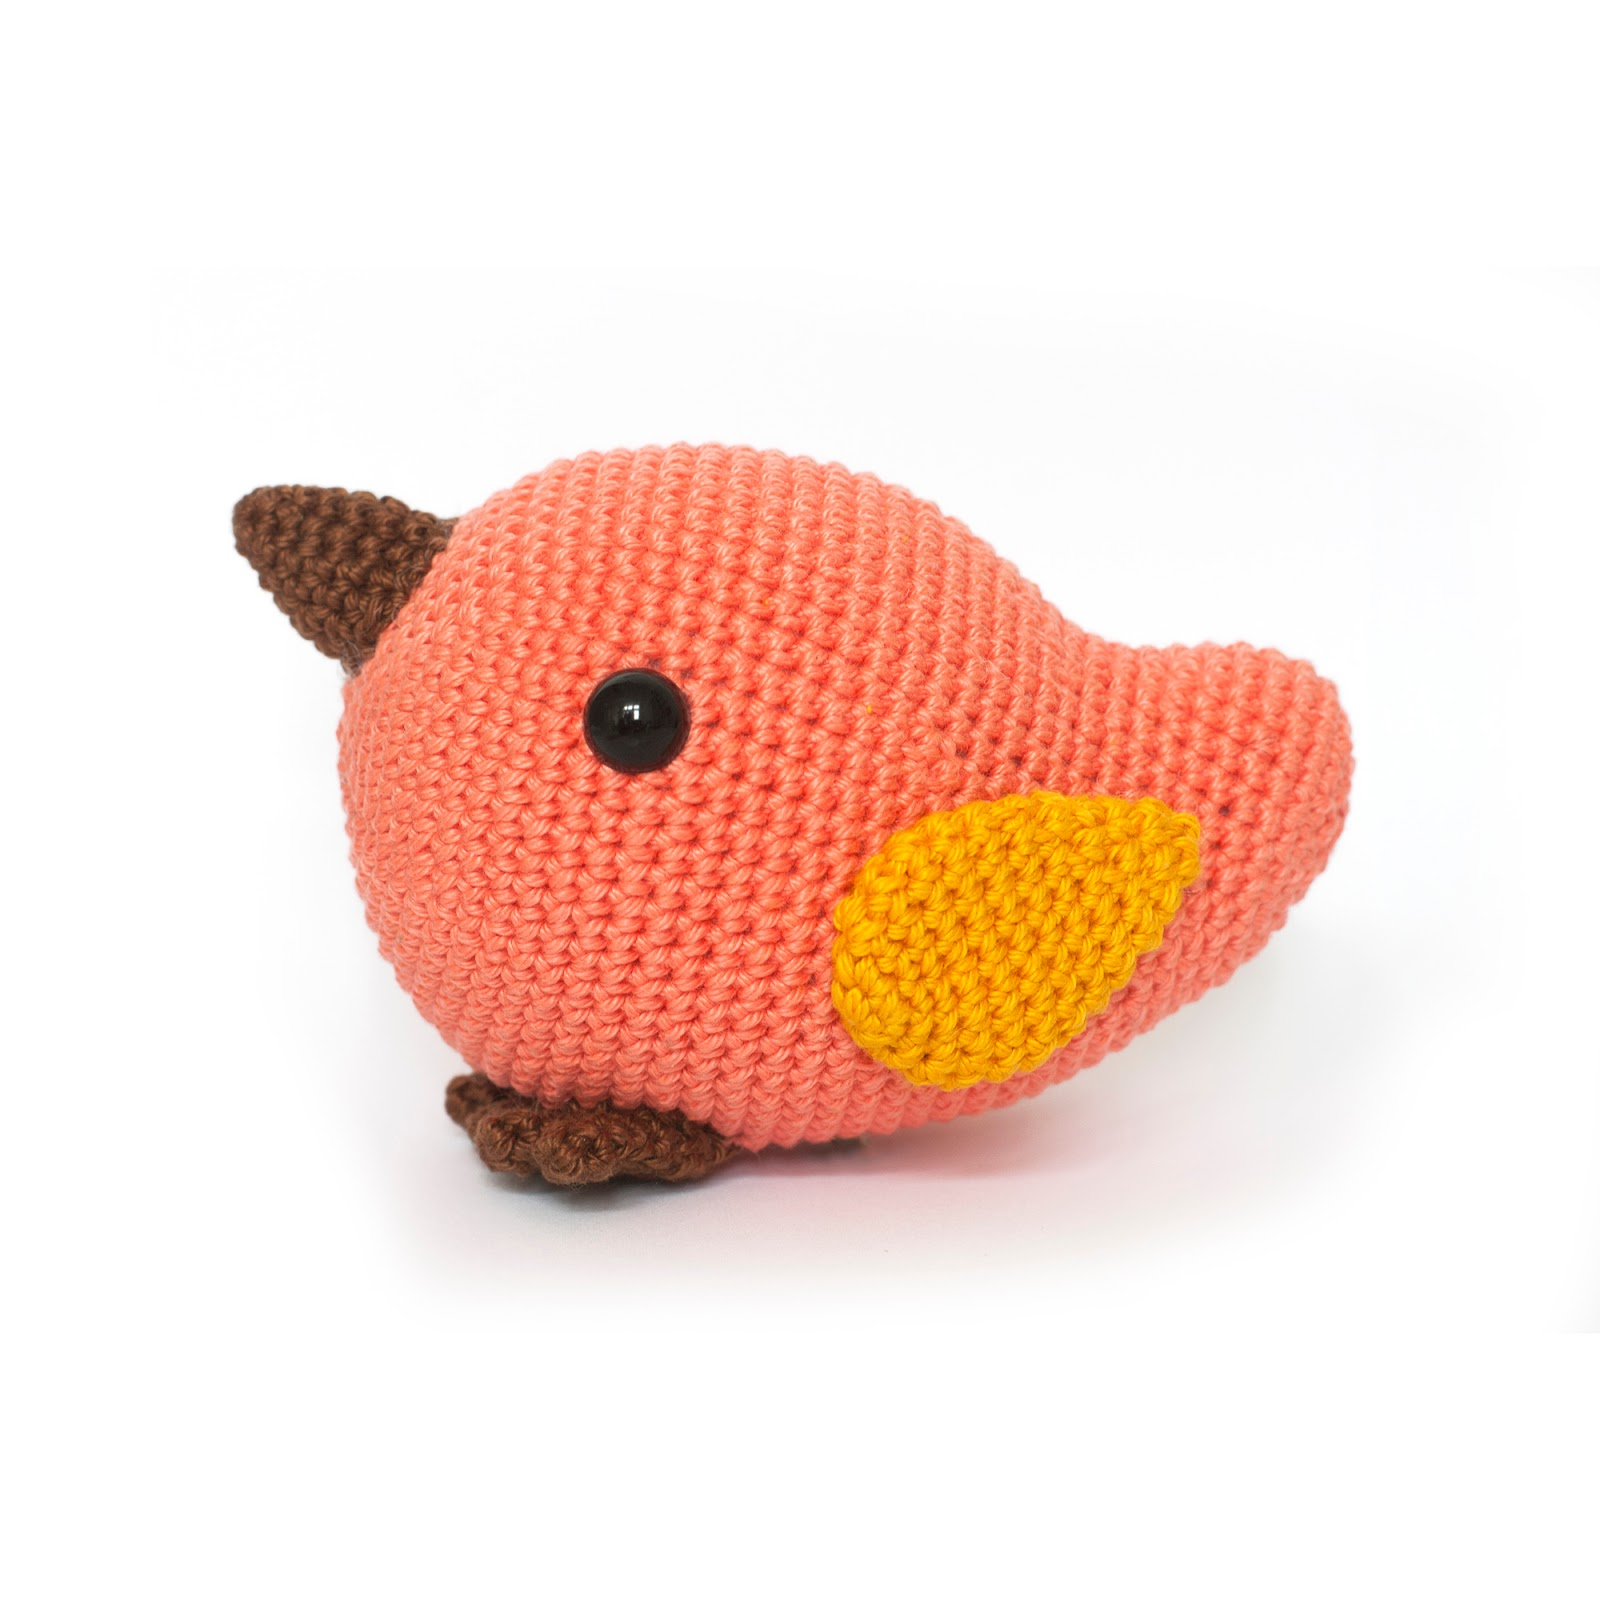 Amigurumi Crochet Bird Patterns : Toy Patterns by DIY Fluffies : Bird crochet pattern